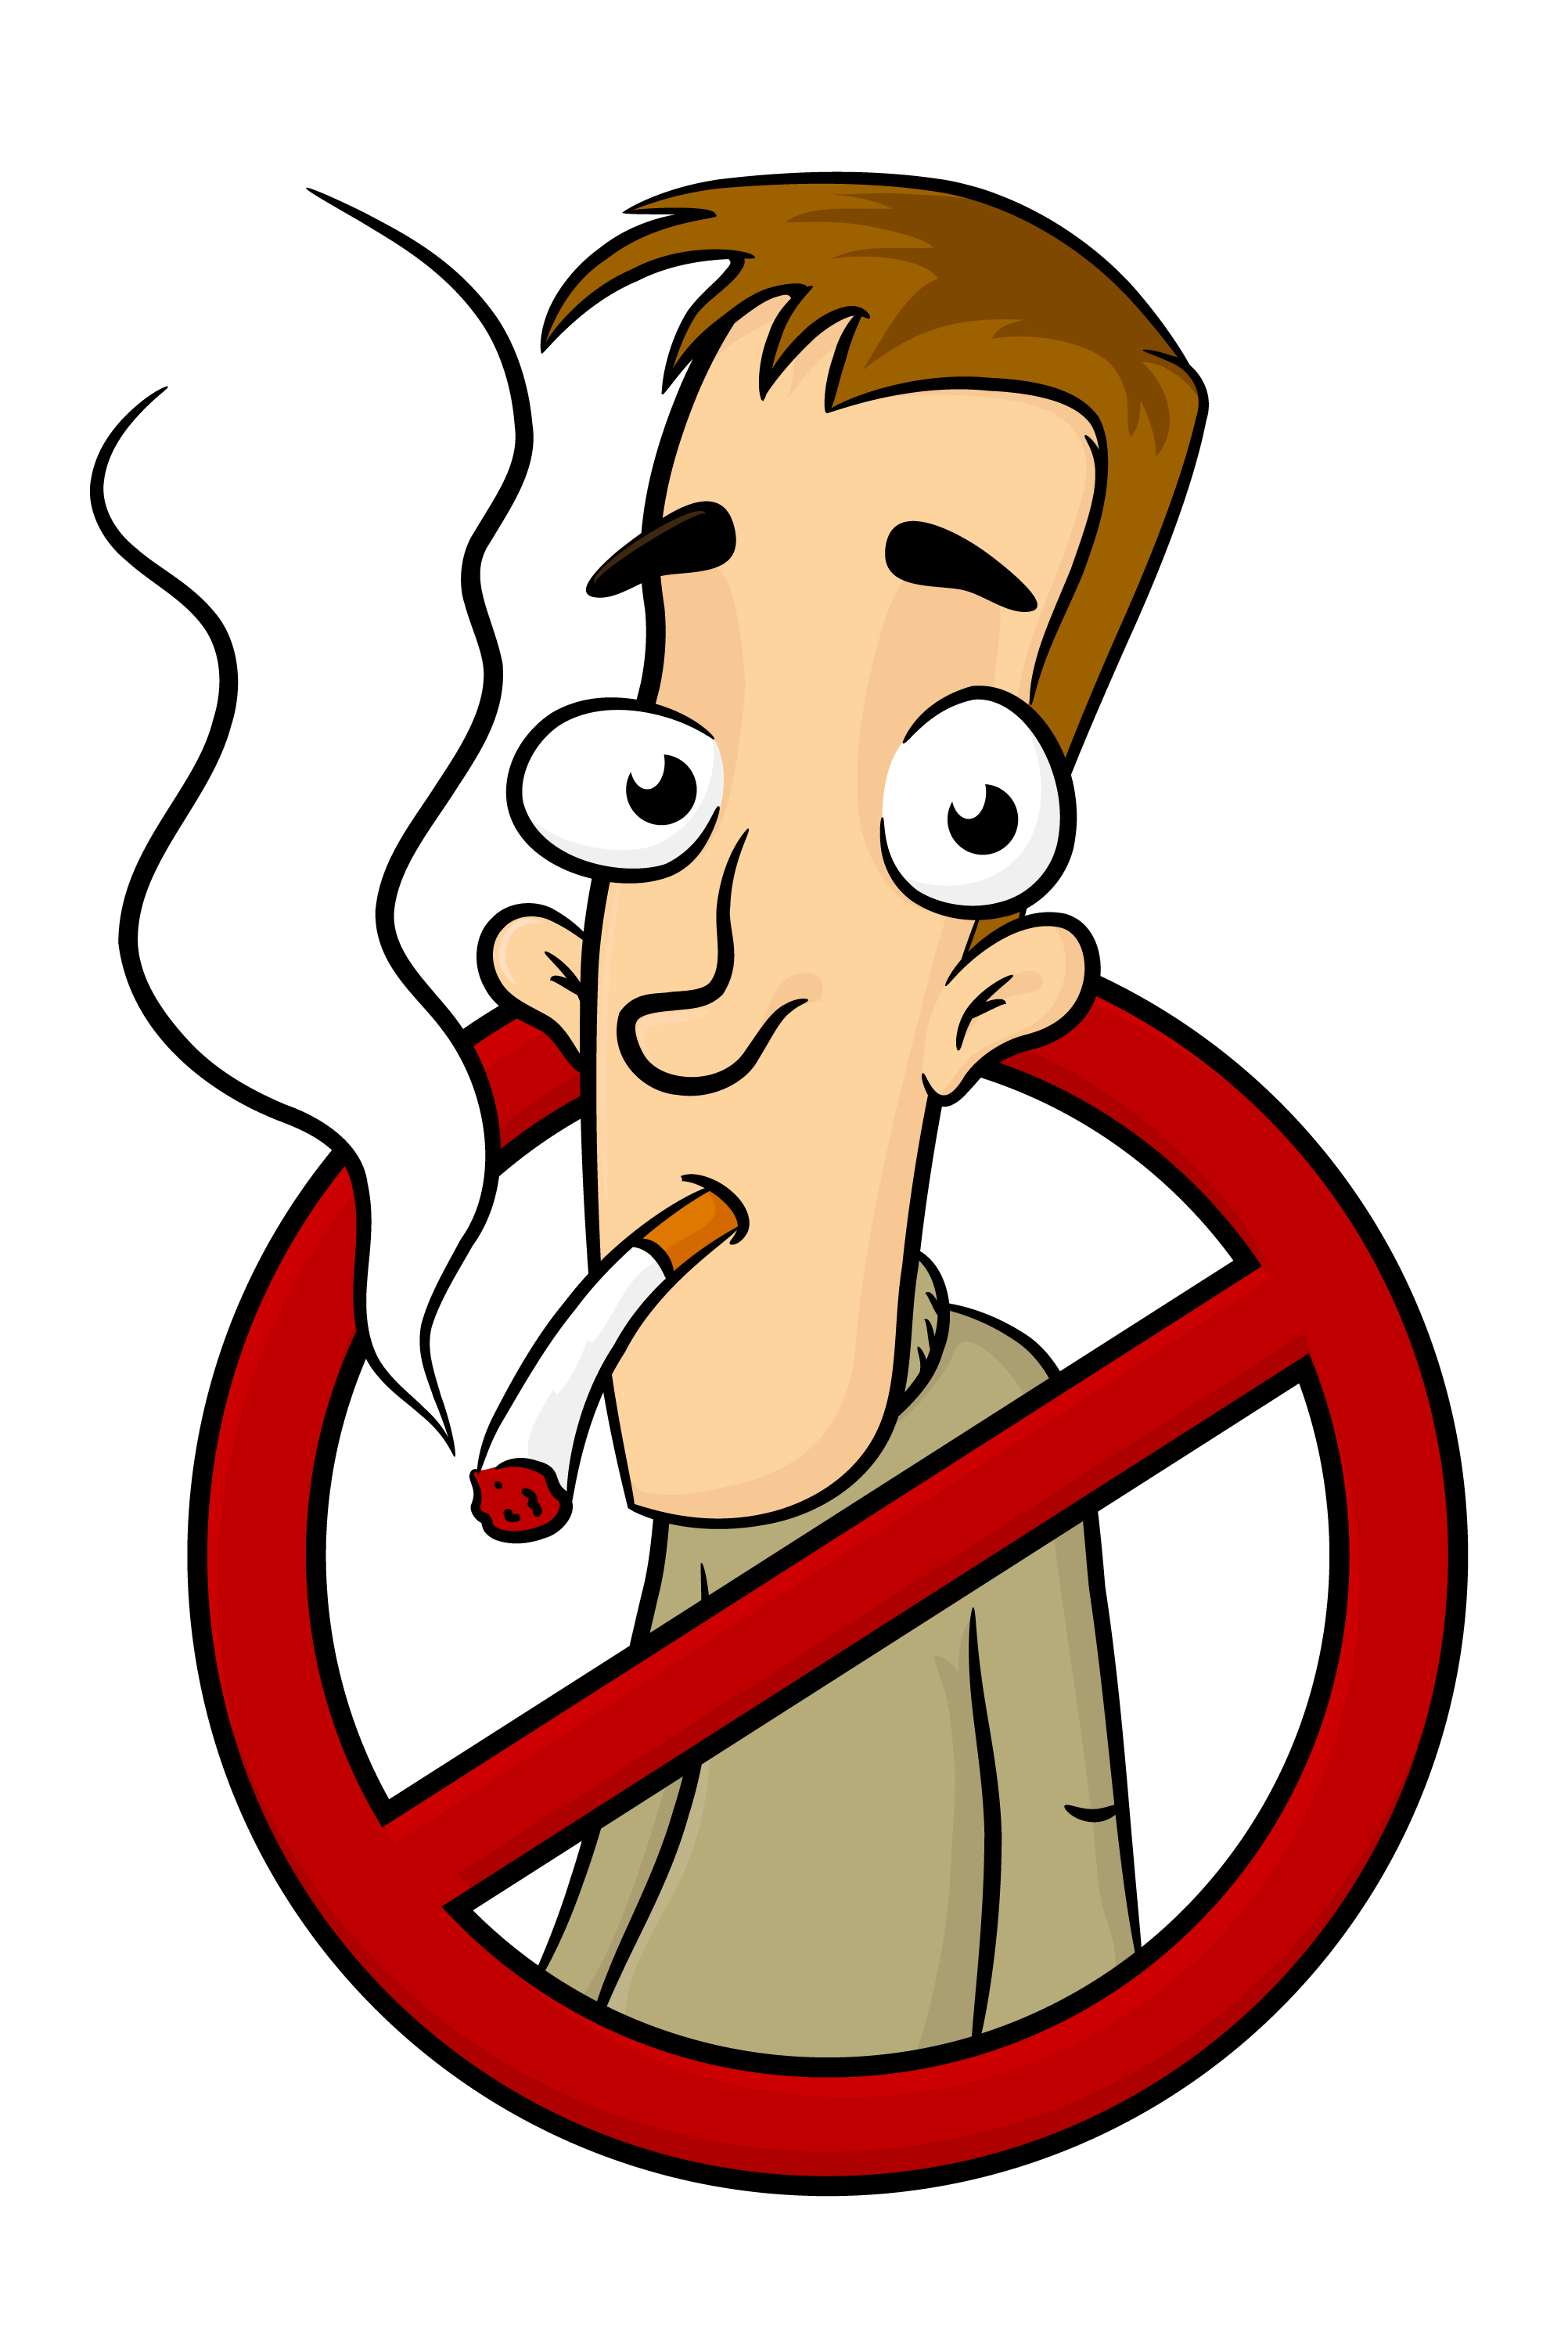 Free download clip art. Smoking clipart